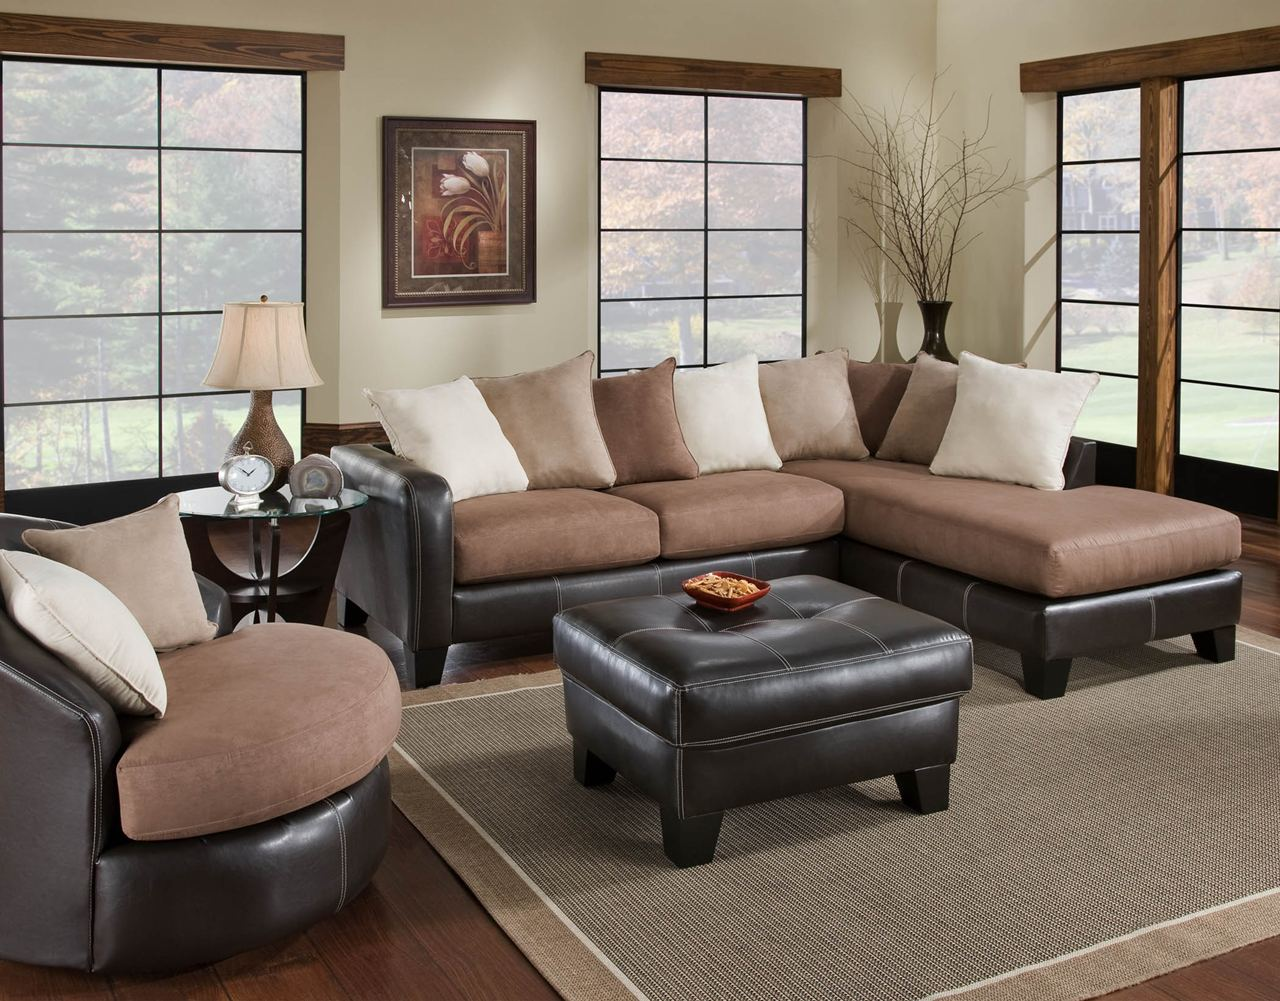 Ava Furniture Houston   Cheap Discount Comforter Furniture In Greater  Houston TX Area.